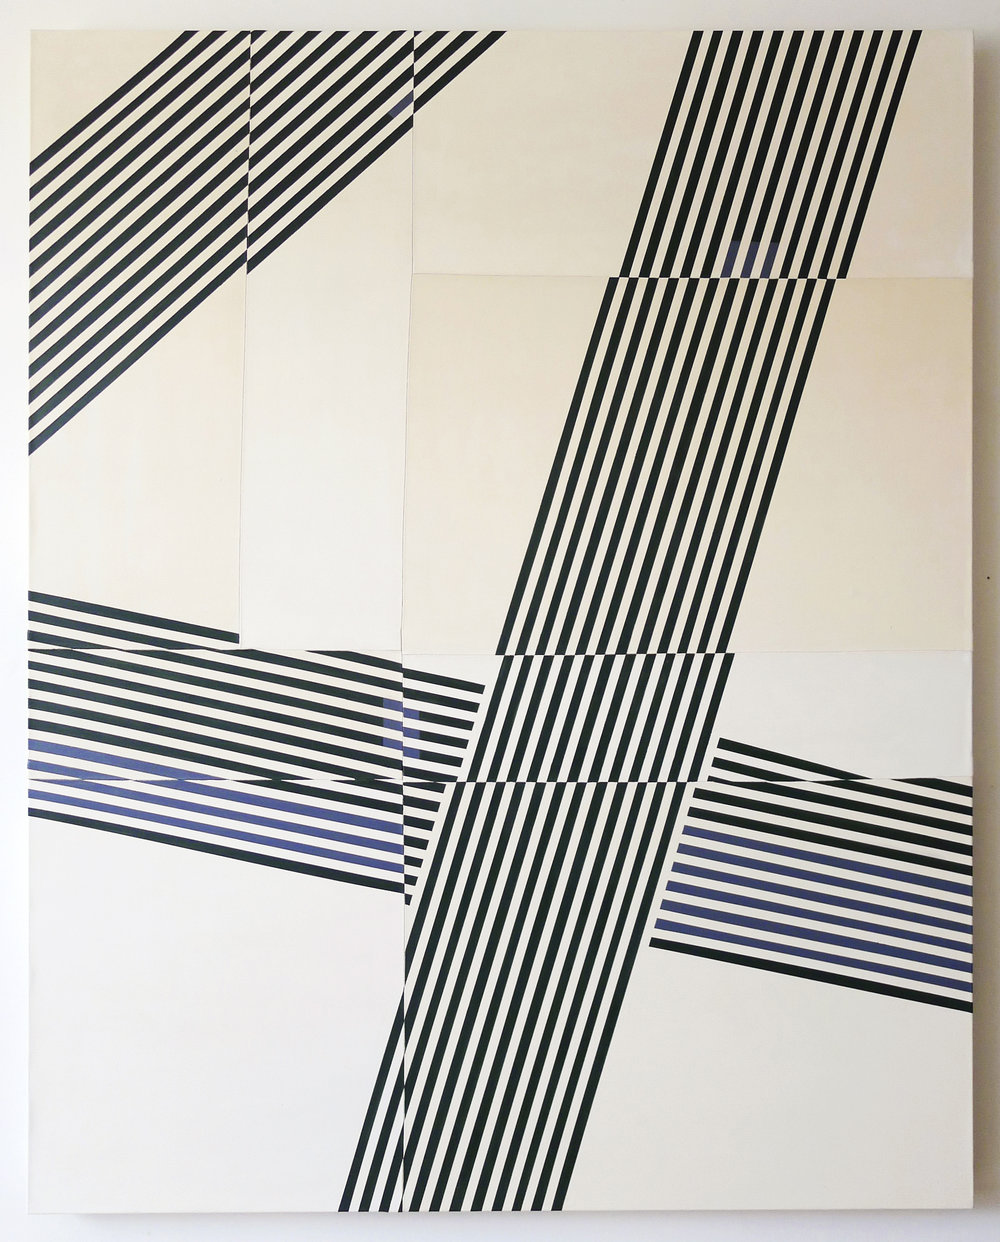 jaywalker  2014 oil on stitched cotton twill 60 in x 48 in